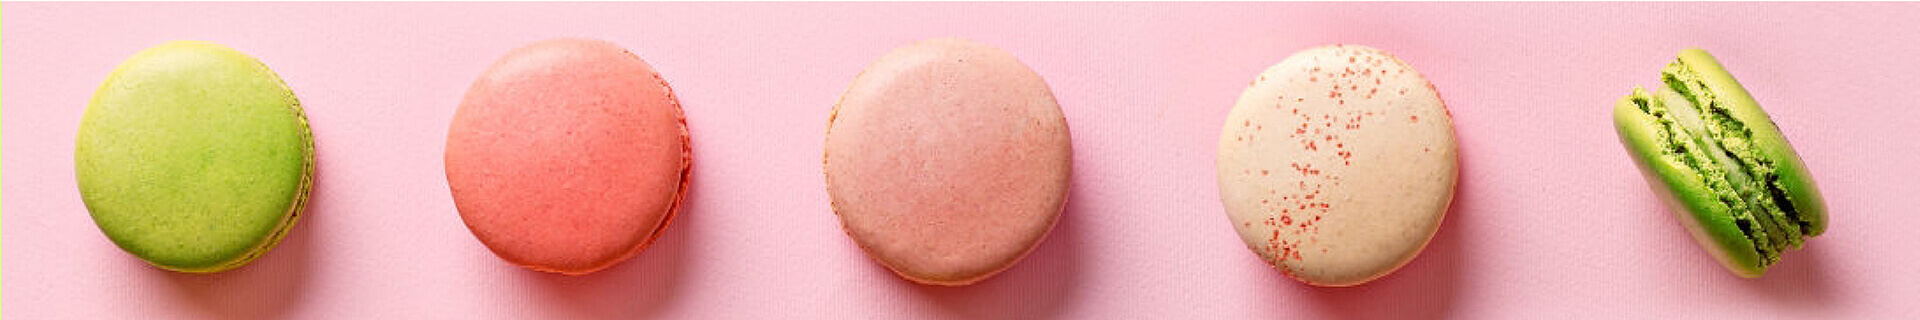 A row of five macarons on pink background